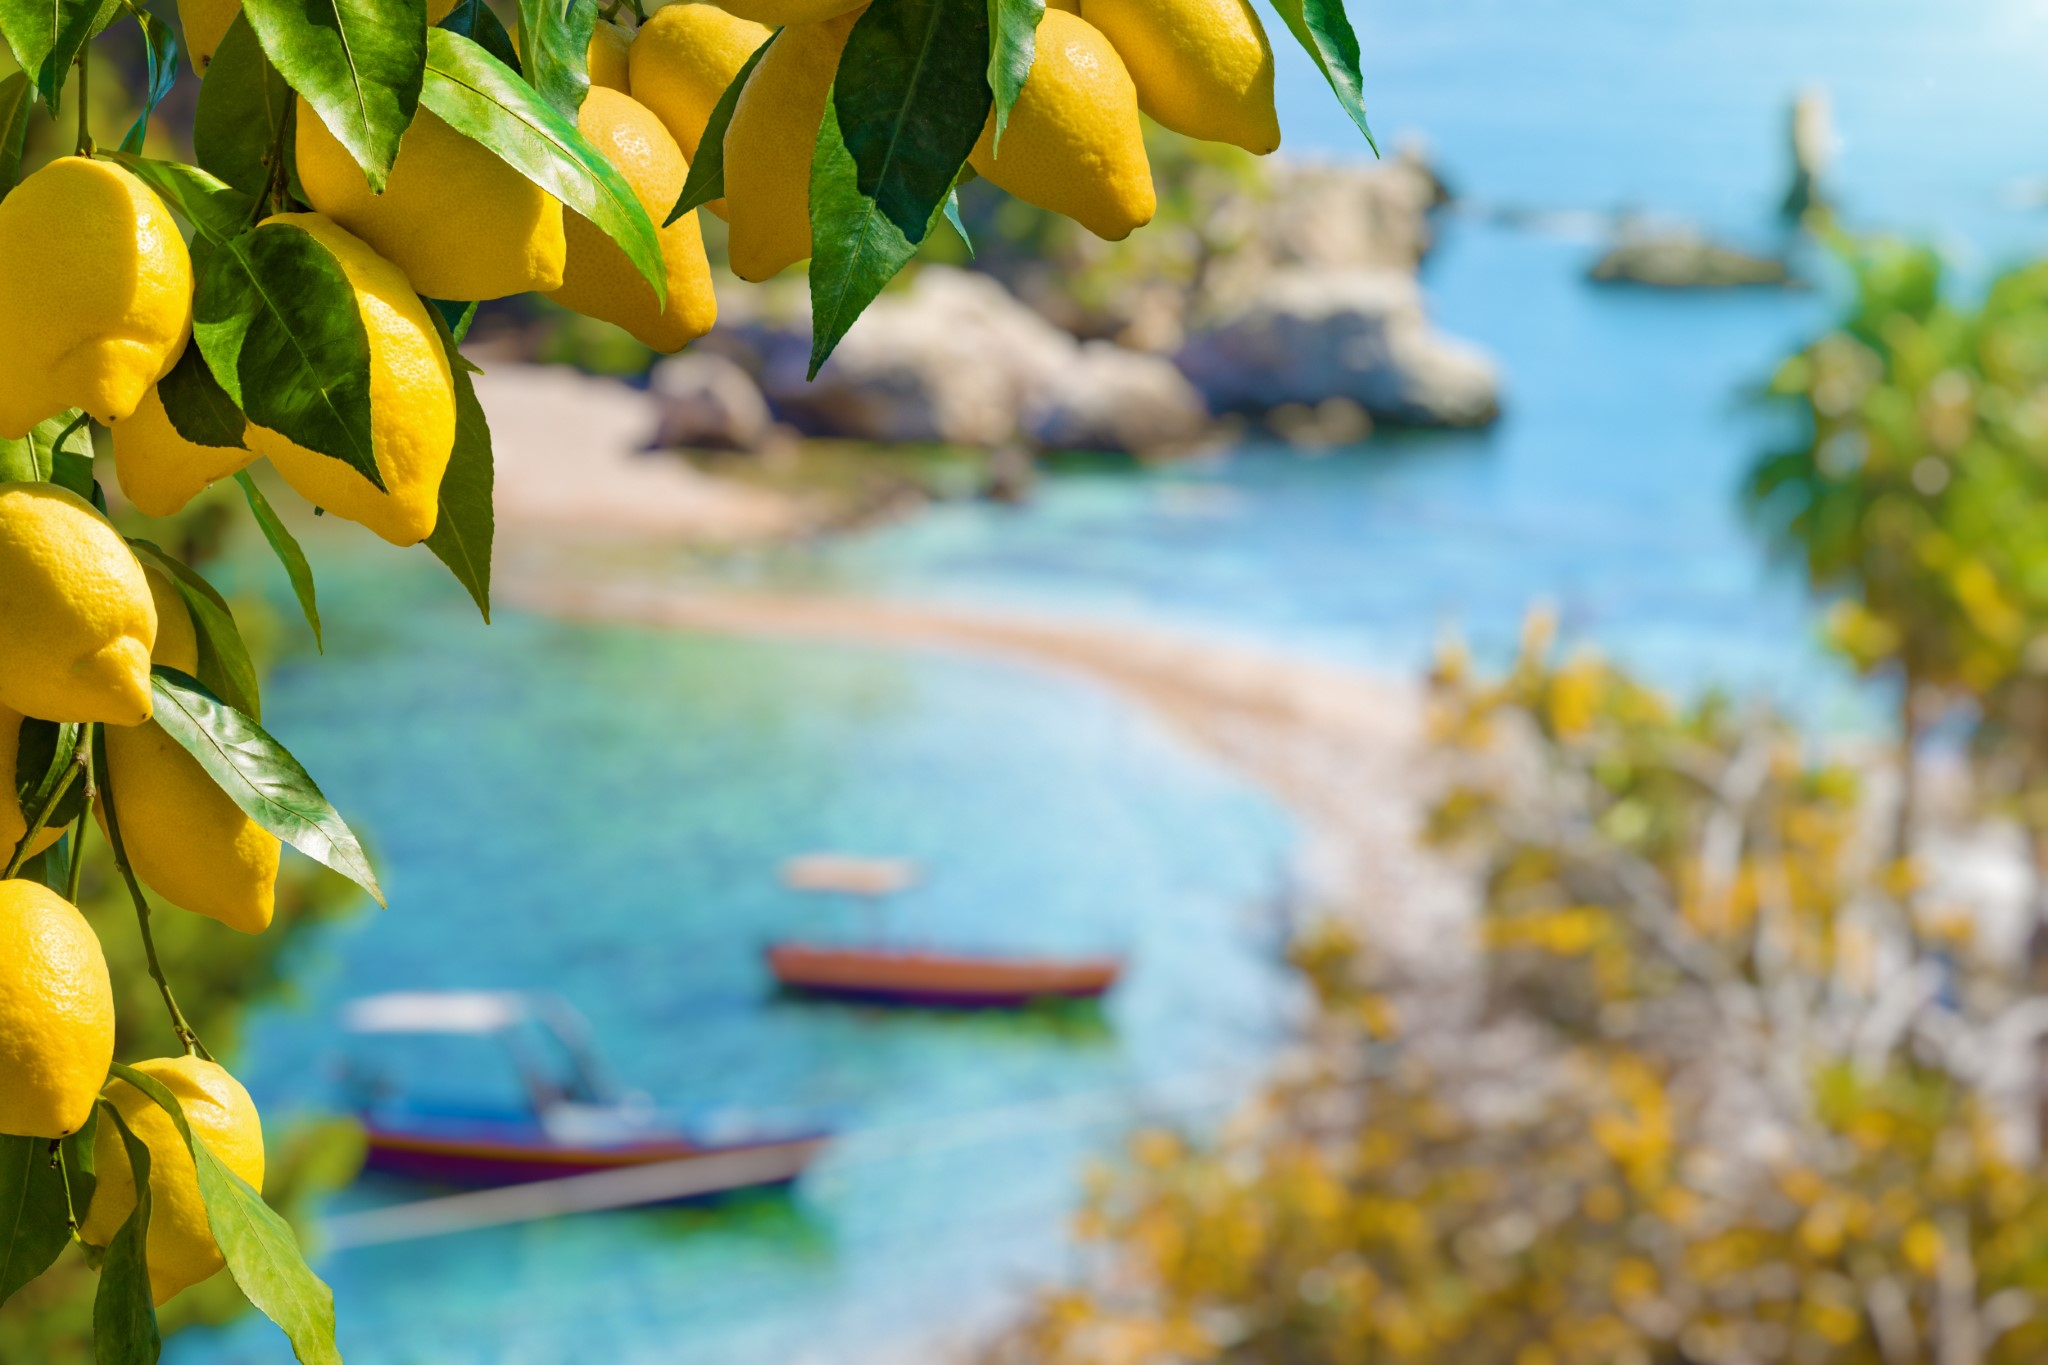 Bunches of fresh yellow ripe lemons with green leaves. Narrow path connects island to mainland Taormina beach in azure waters of Ionian Sea, Sicily, Italy.